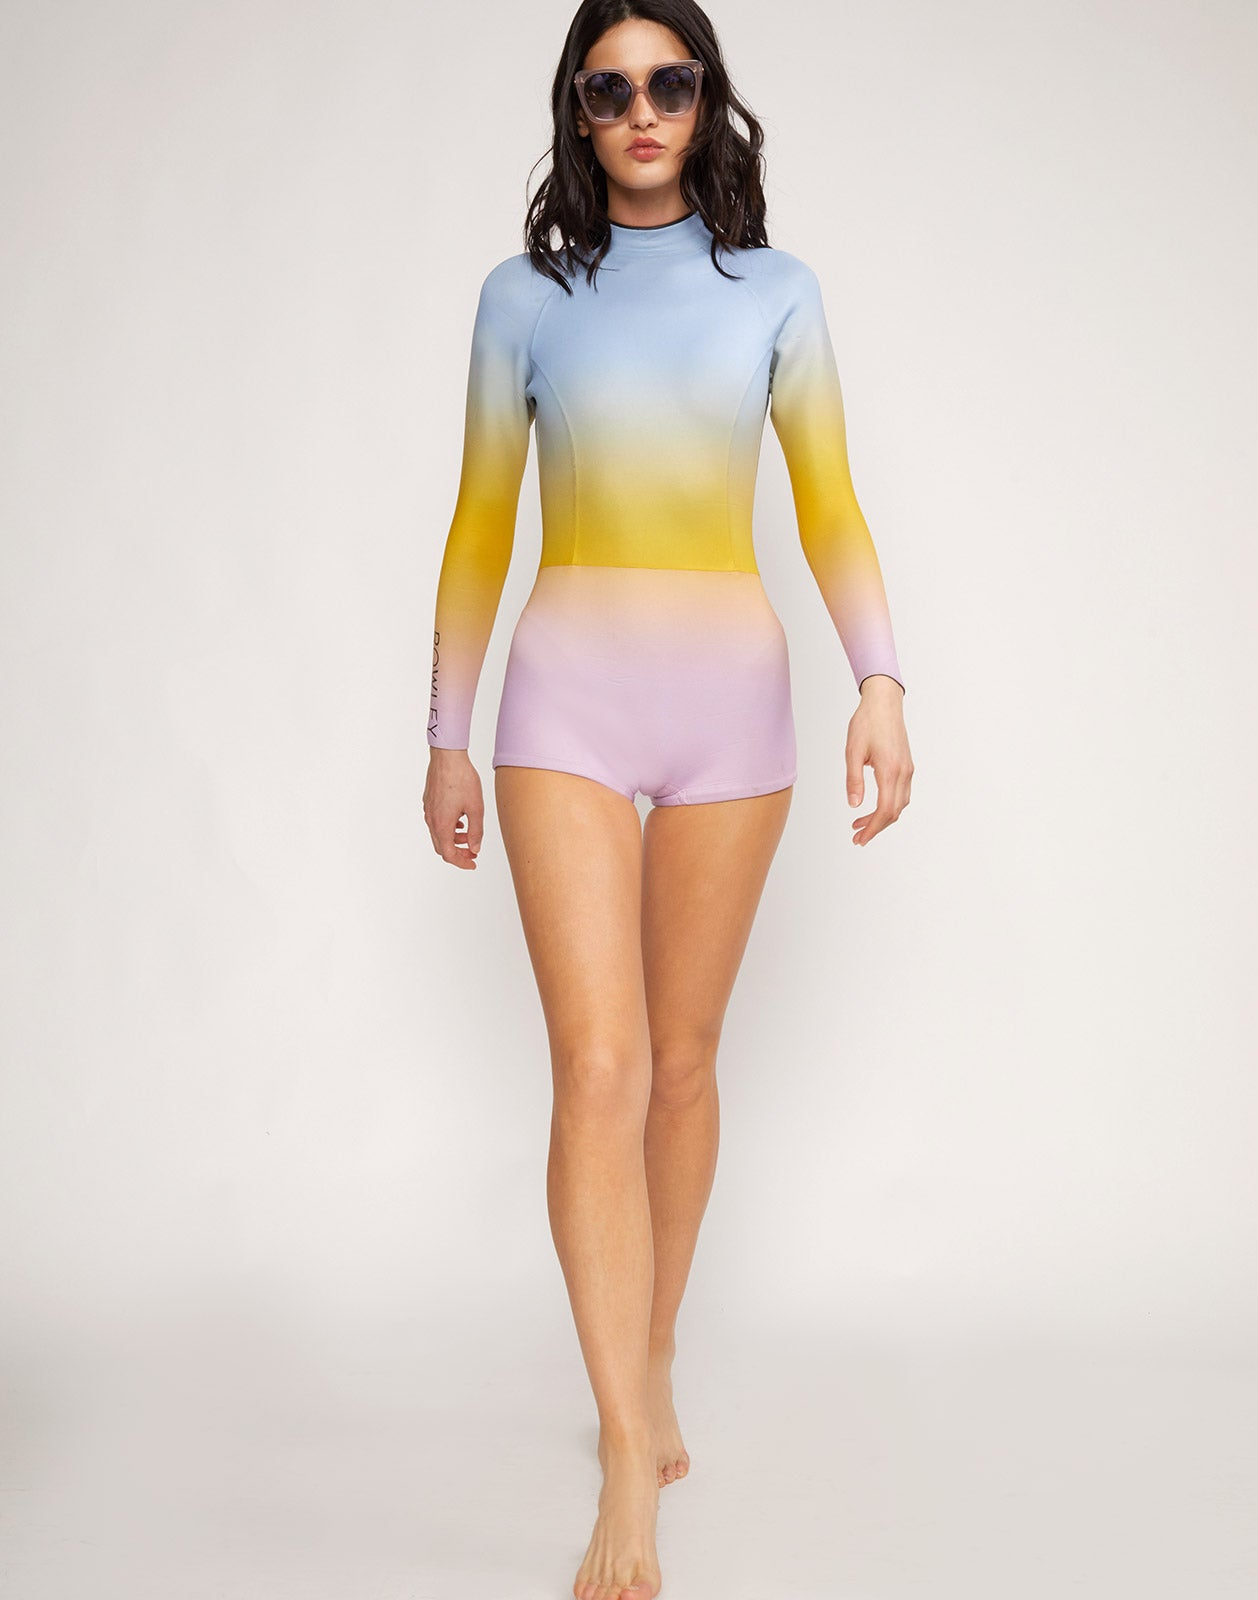 Alternate full view model wearing Sea Ombre Wetsuit